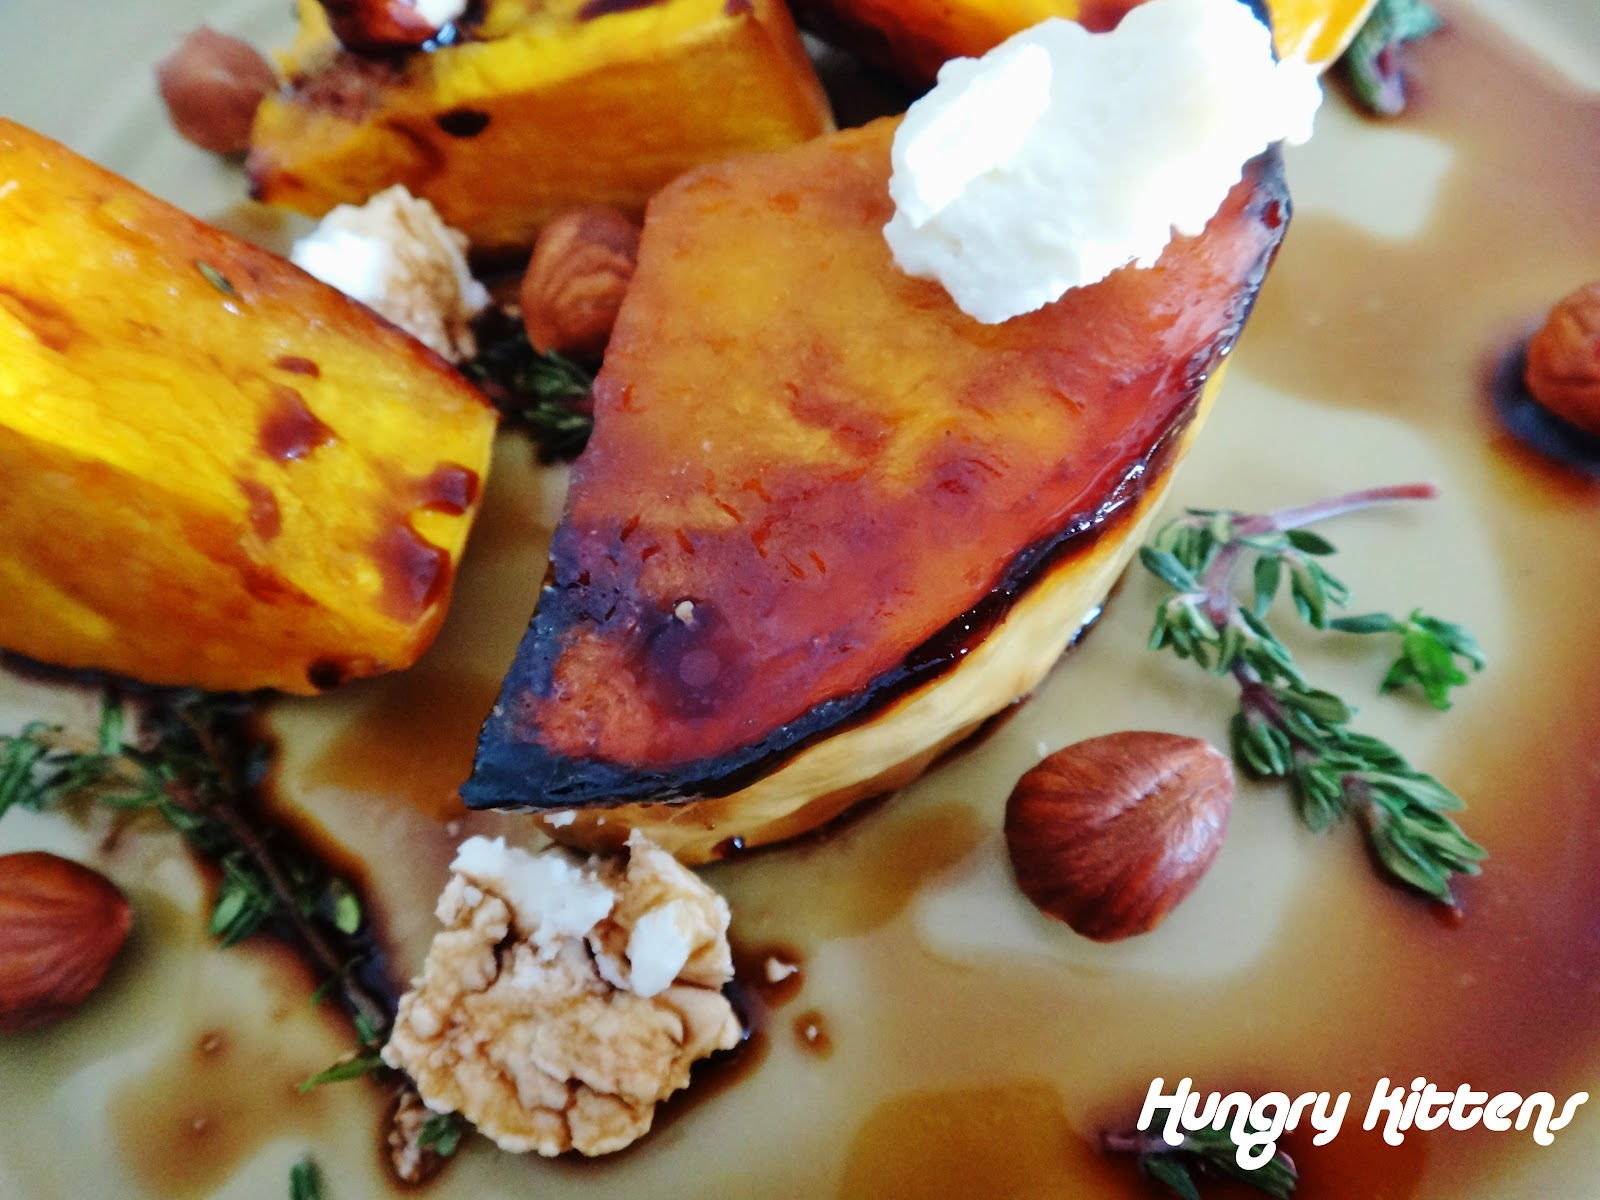 Hungry Kittens: Honey Roasted Pumpkin with Goat's Cheese ...